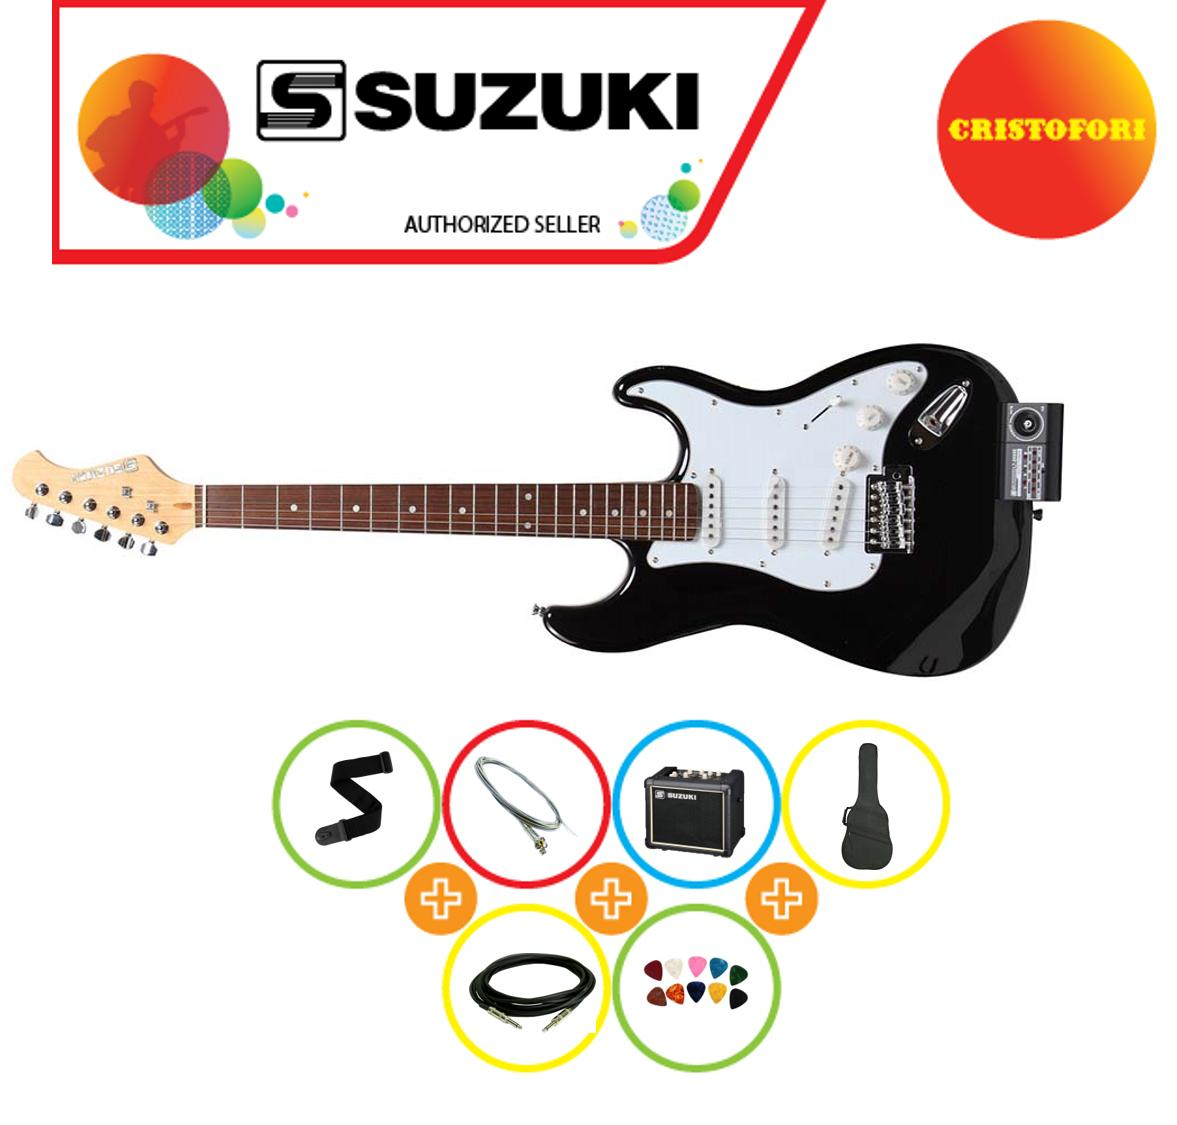 Suzuki Sst-1 Package Electric Guitar (japans No. 1 Music Educational Brand) By Cristofori Music